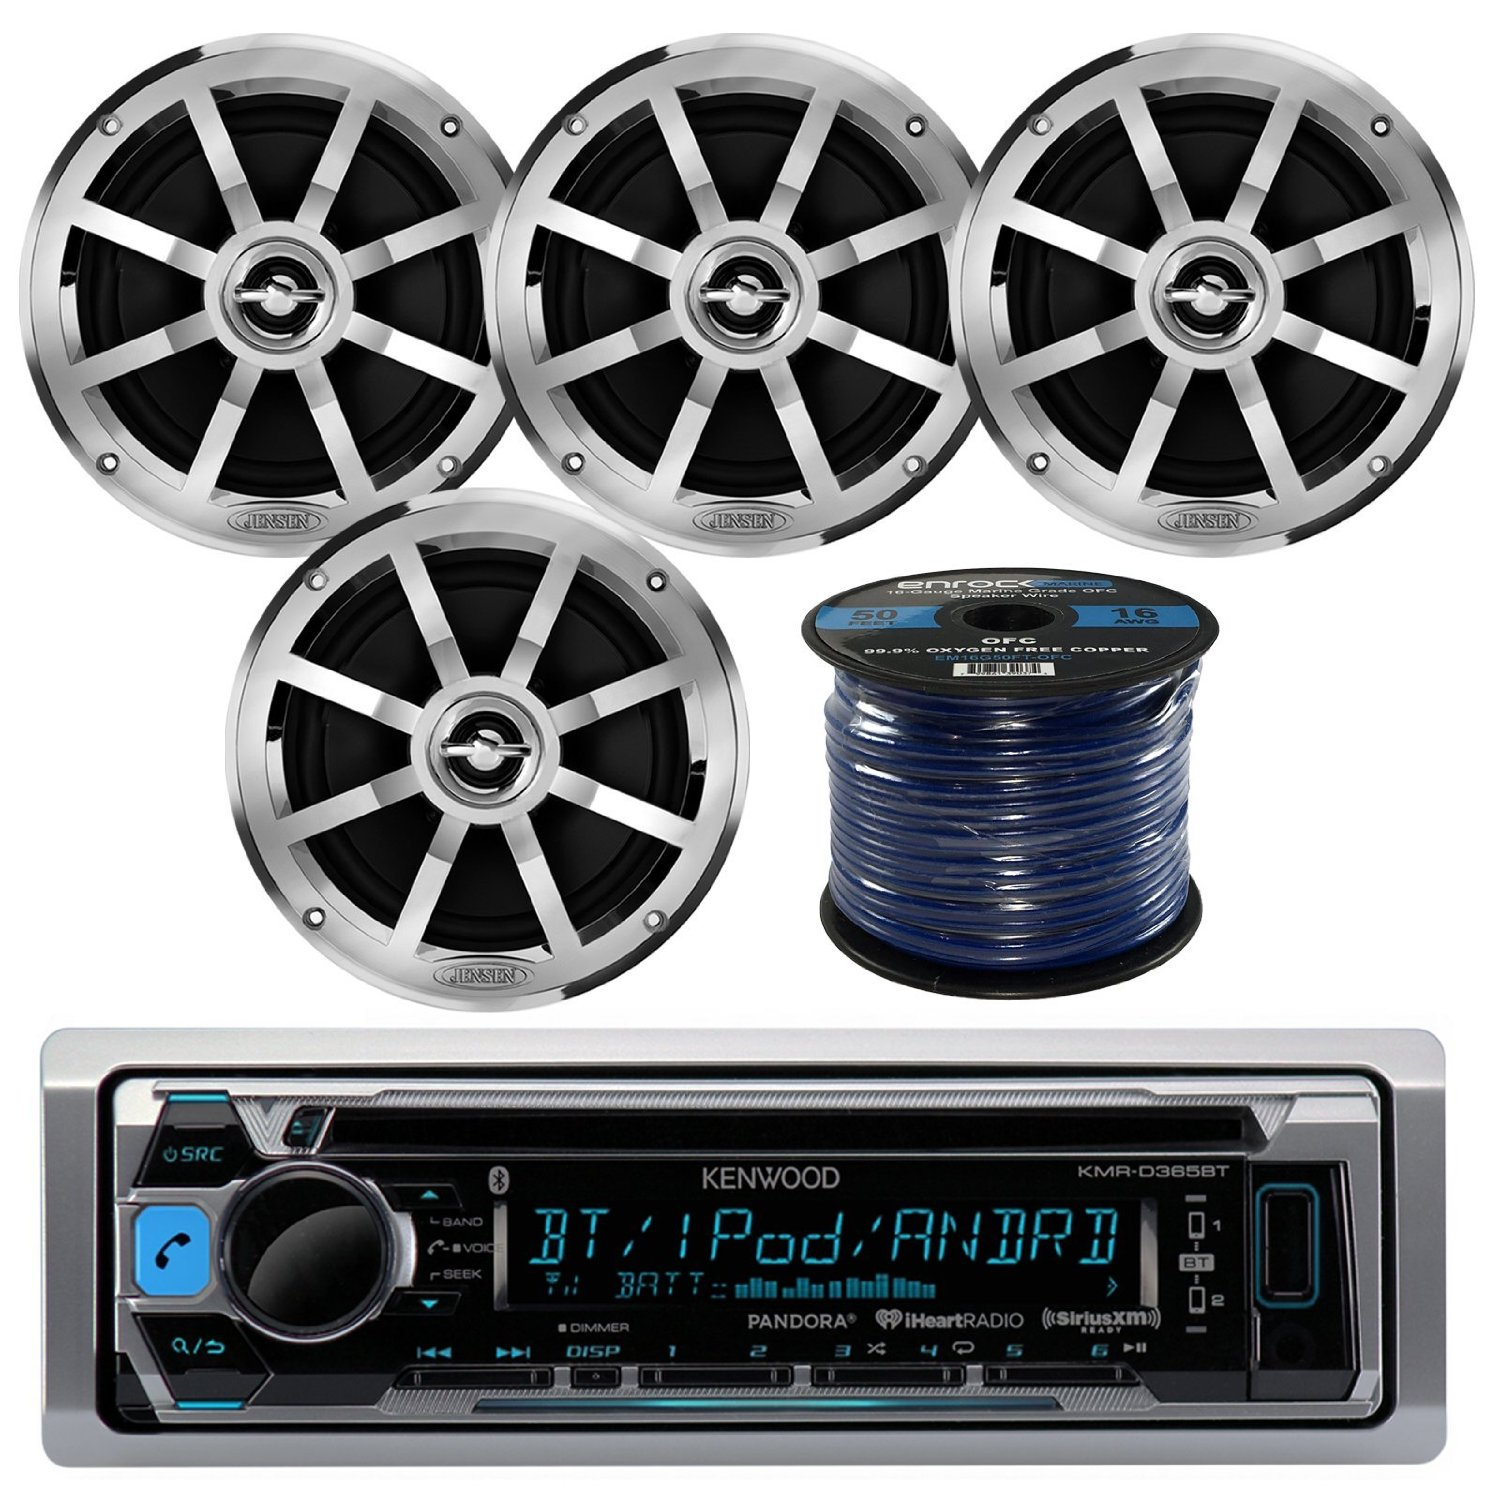 "Kenwood KMR-D365BT MP3/USB/AUX Bluetooth Marine Boat Yacht Stereo Receiver CD Player Bundle Combo W/ 4x Jensen MSX60CPR 6.5"" Inch 2-Way Coaxial Speakers + Enrock 50 Foot 16g Speaker Wire"